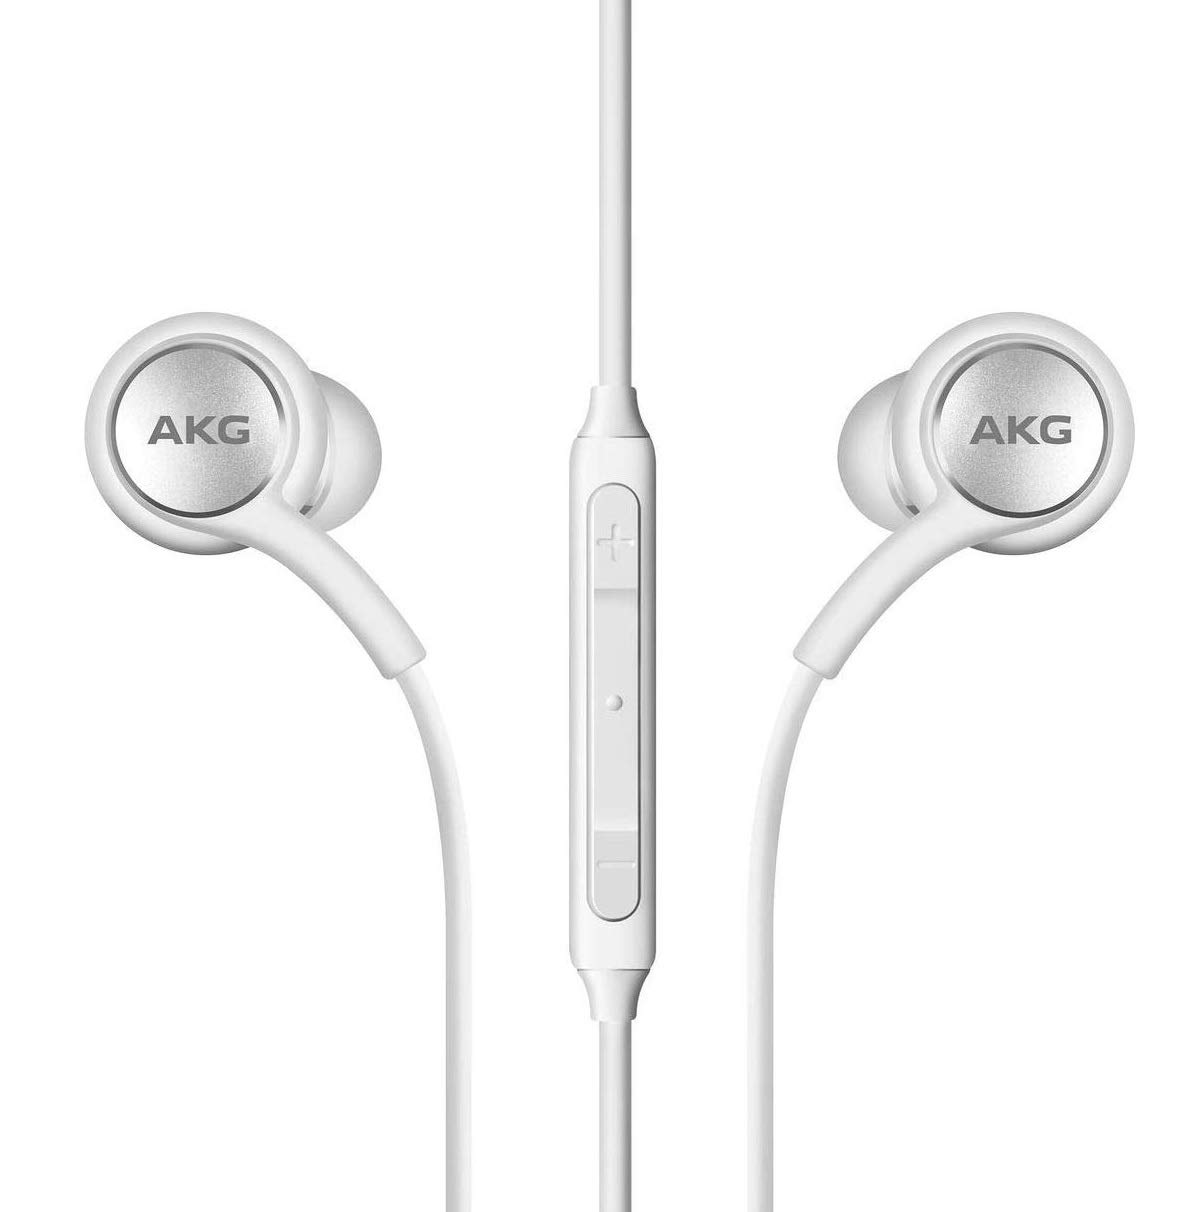 Amazon Com 2019 Stereo Headphones For Samsung Galaxy S10 S10e S10 Plus Designed By Akg With Microphone White Electronics